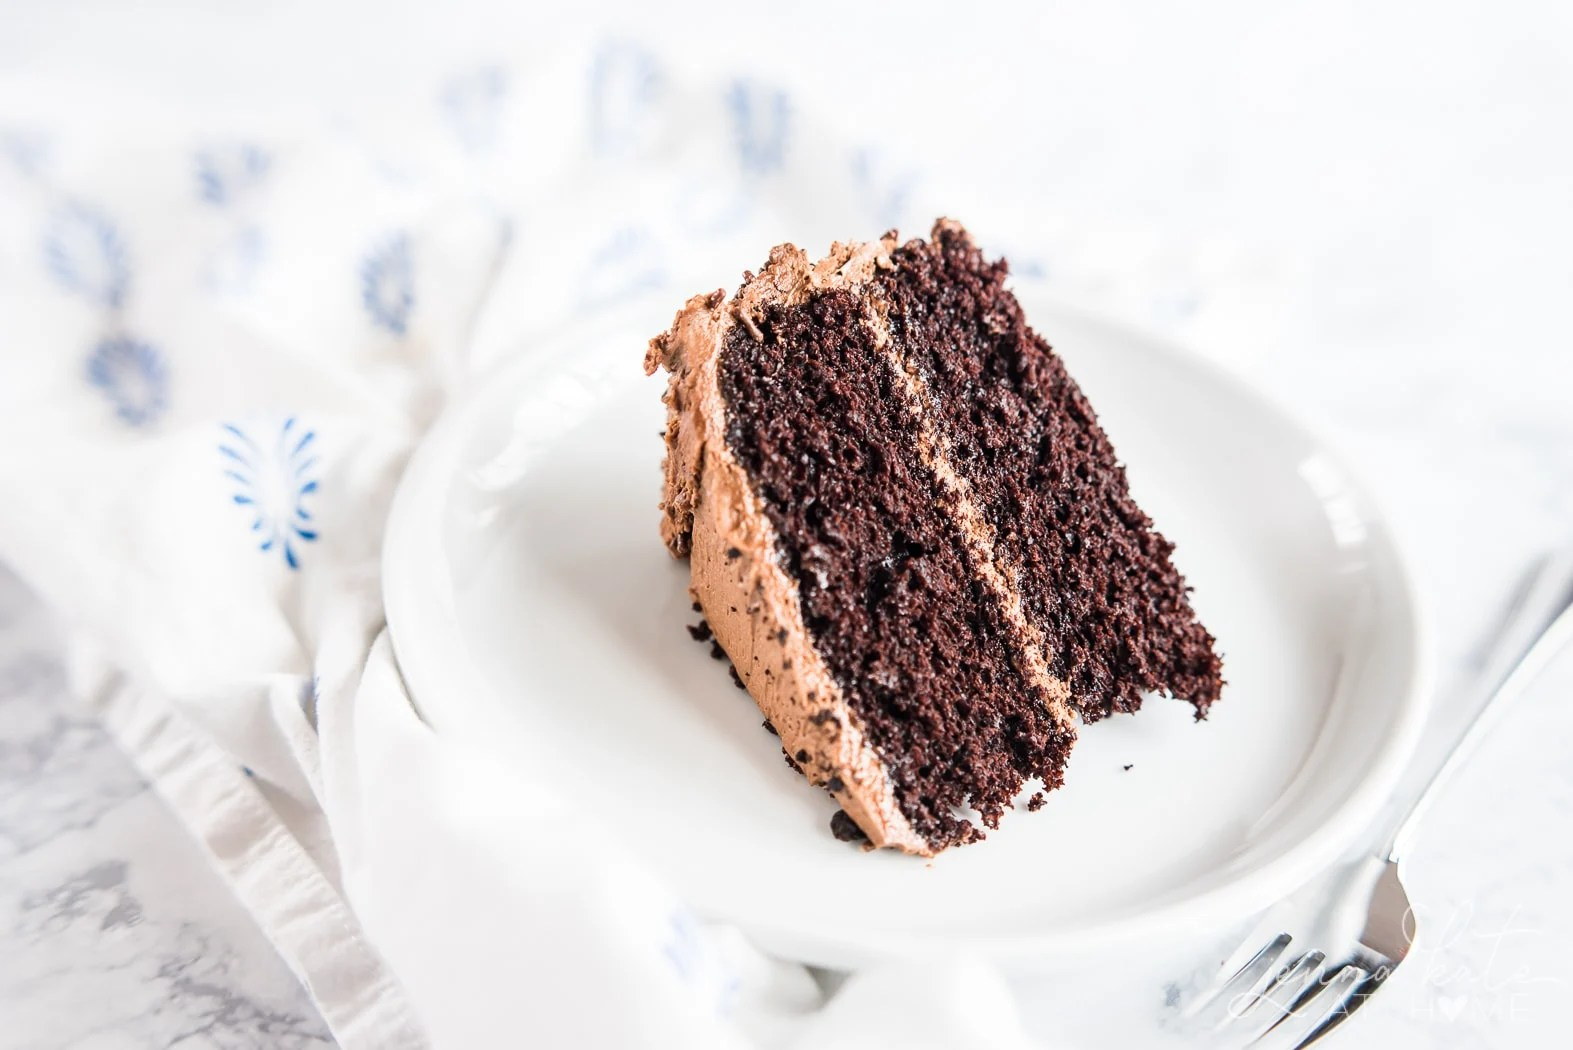 Easy chocolate birthday cake recipe, slice of moist cake on a plate